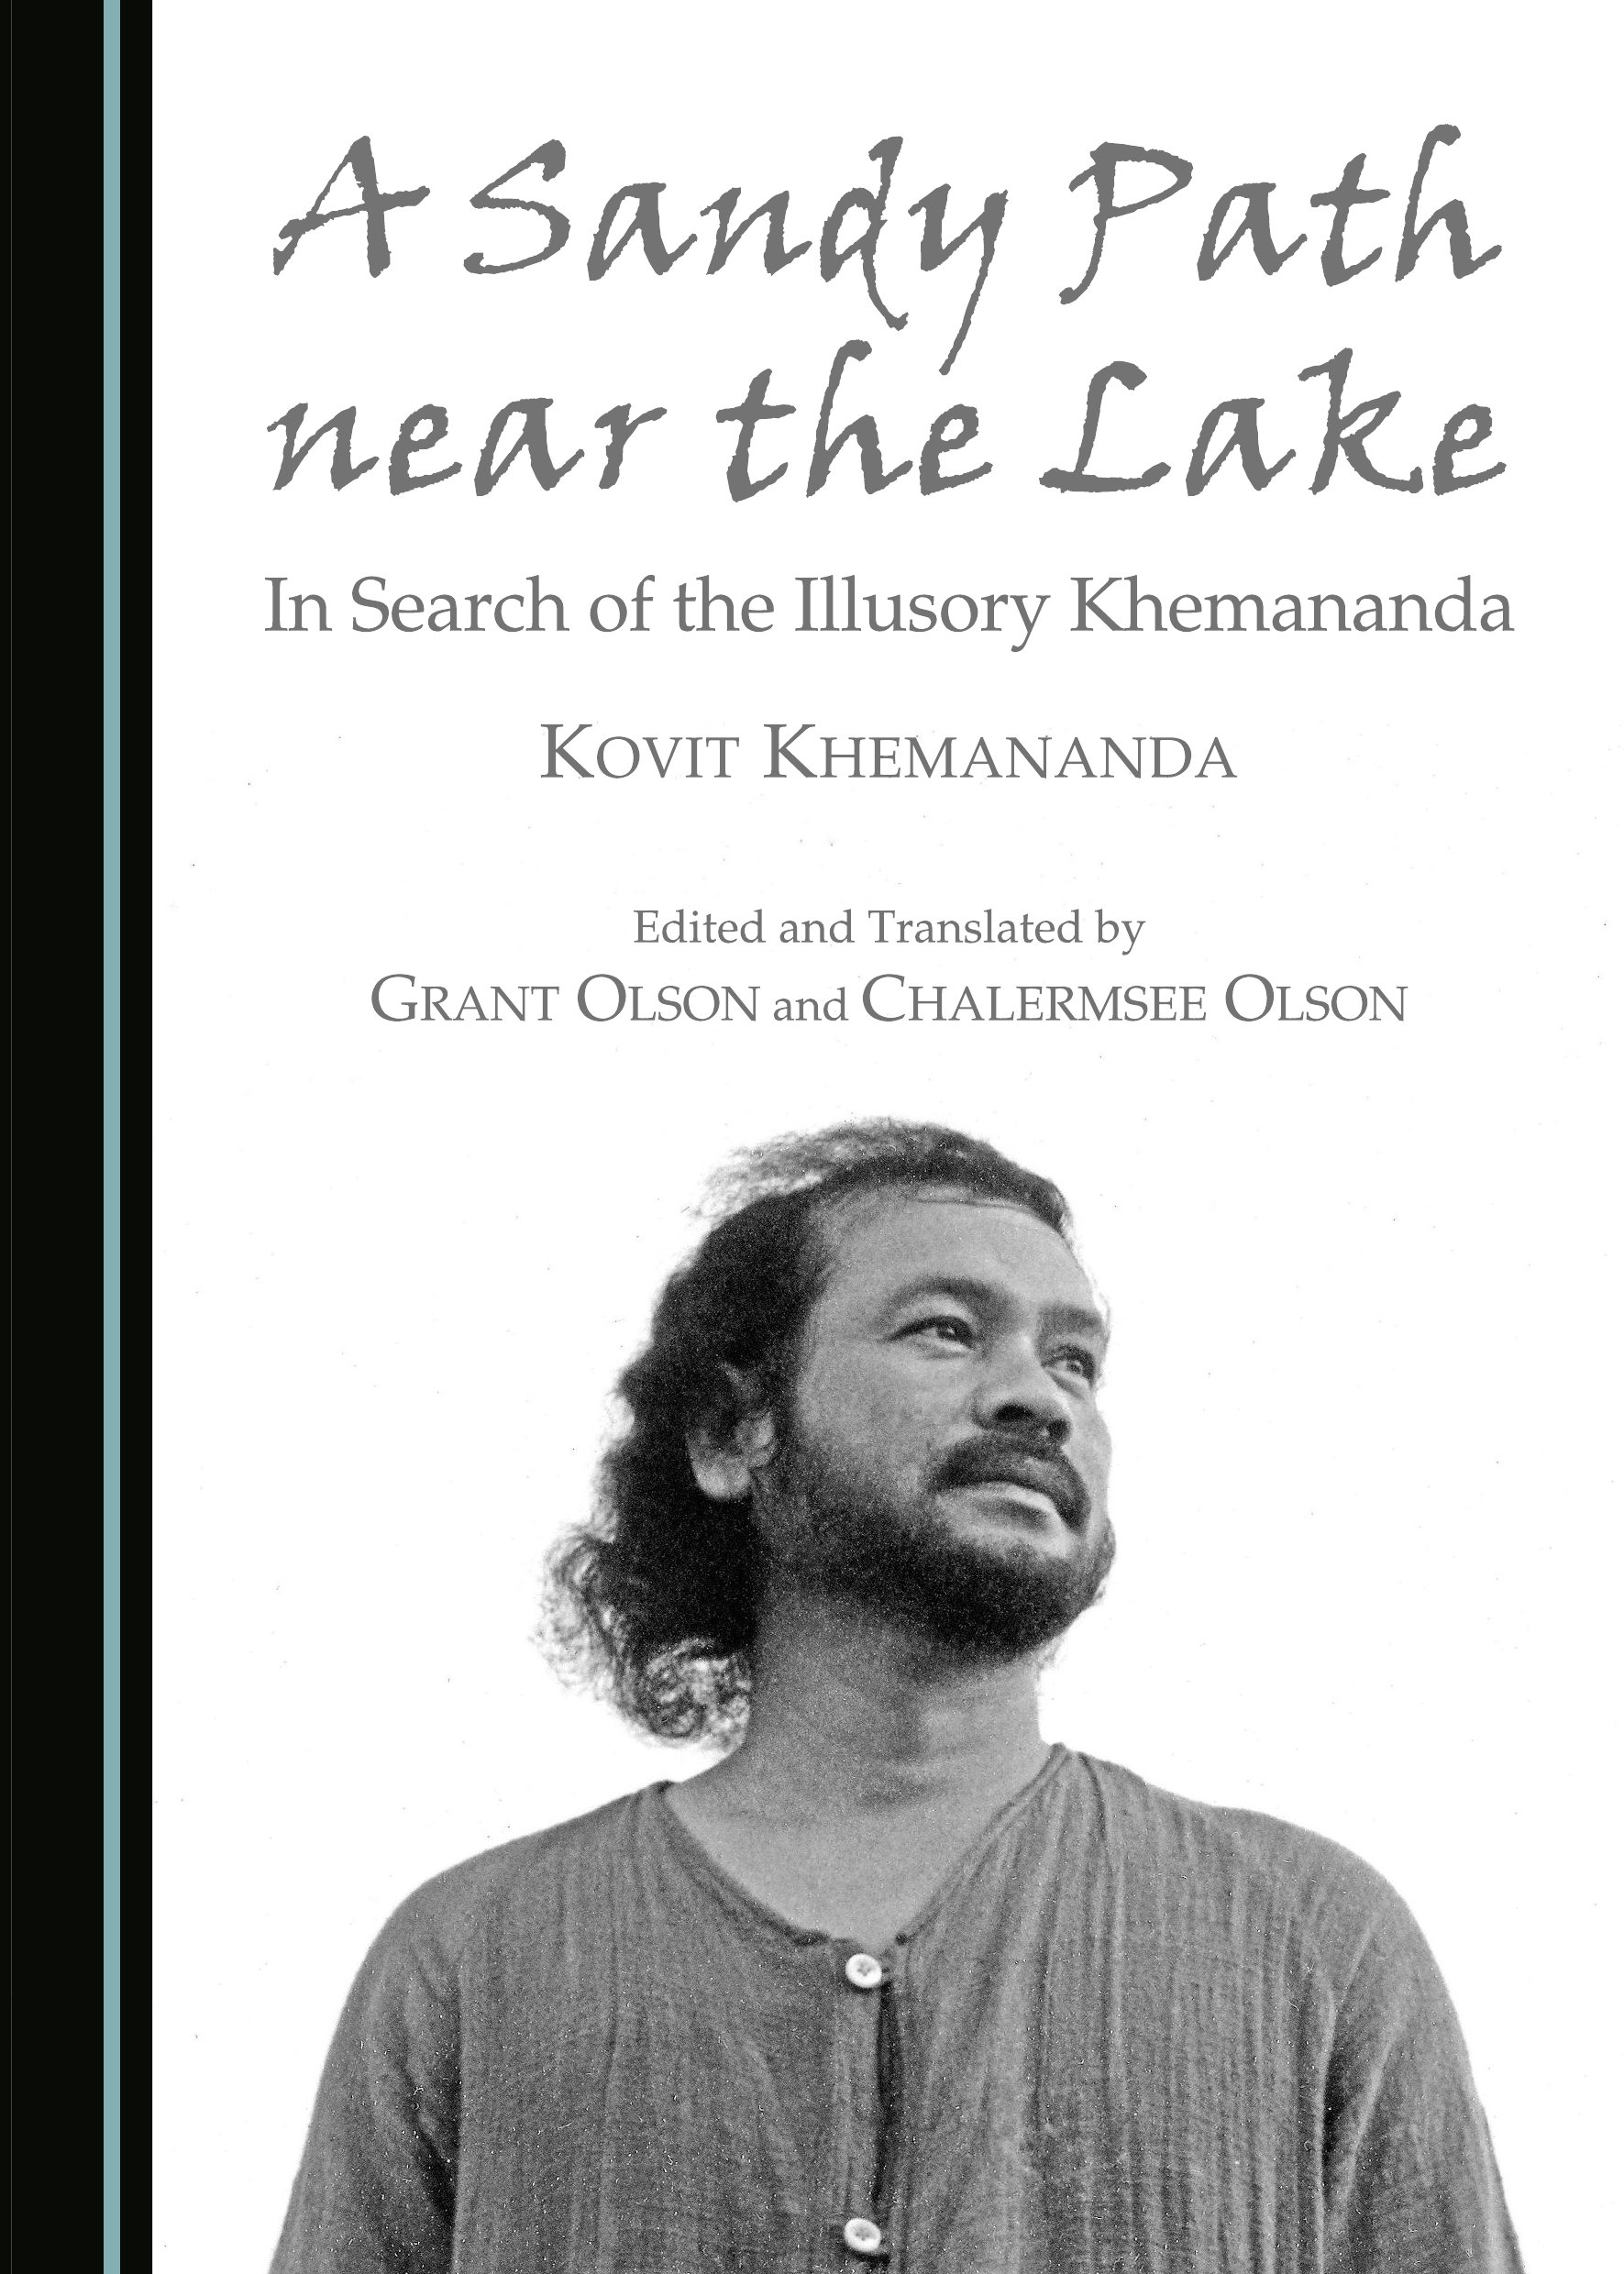 A Sandy Path near the Lake: In Search of the Illusory Khemananda